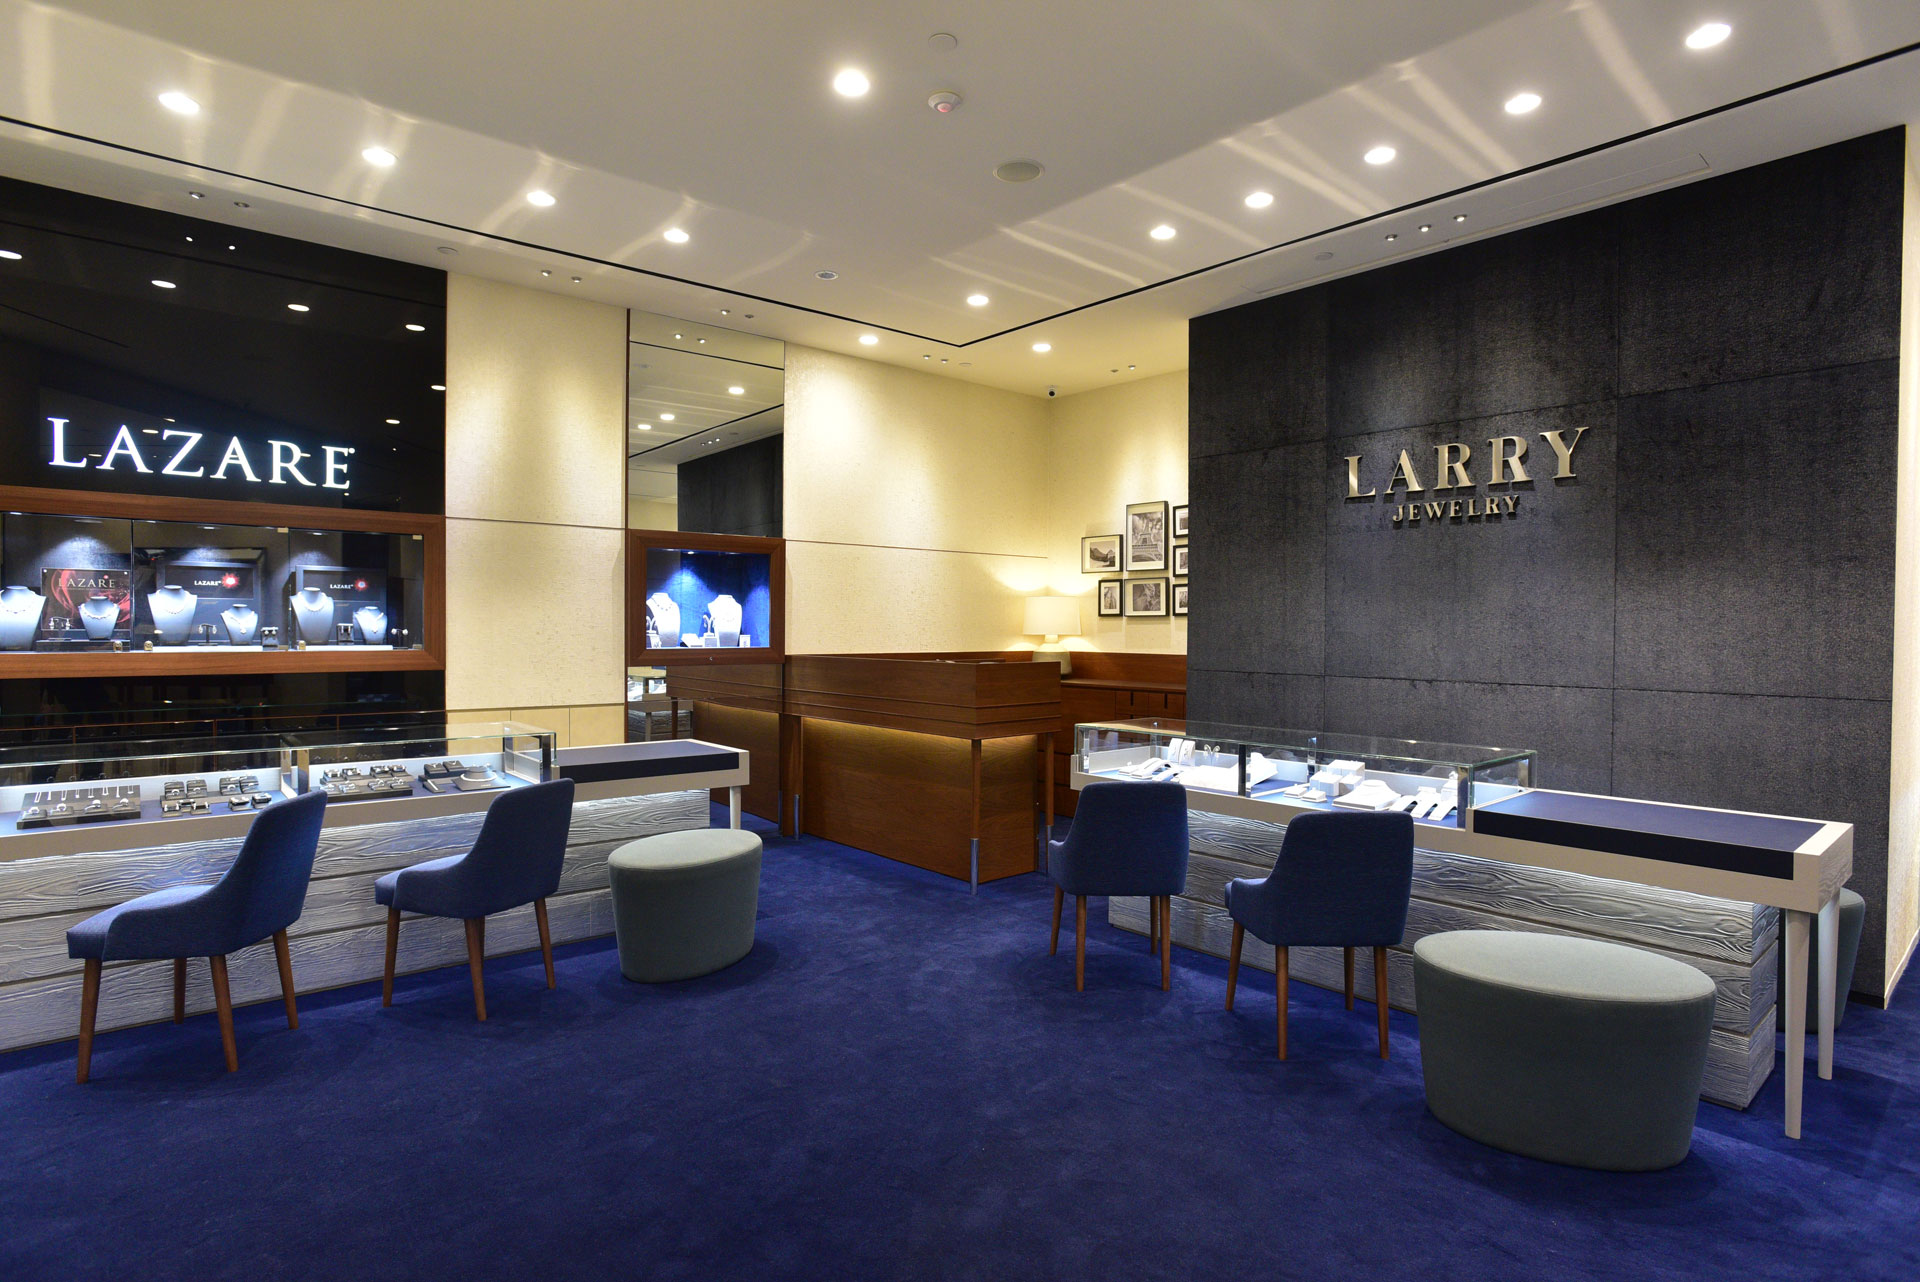 Larry Jewelry - ION Orchard Image 2